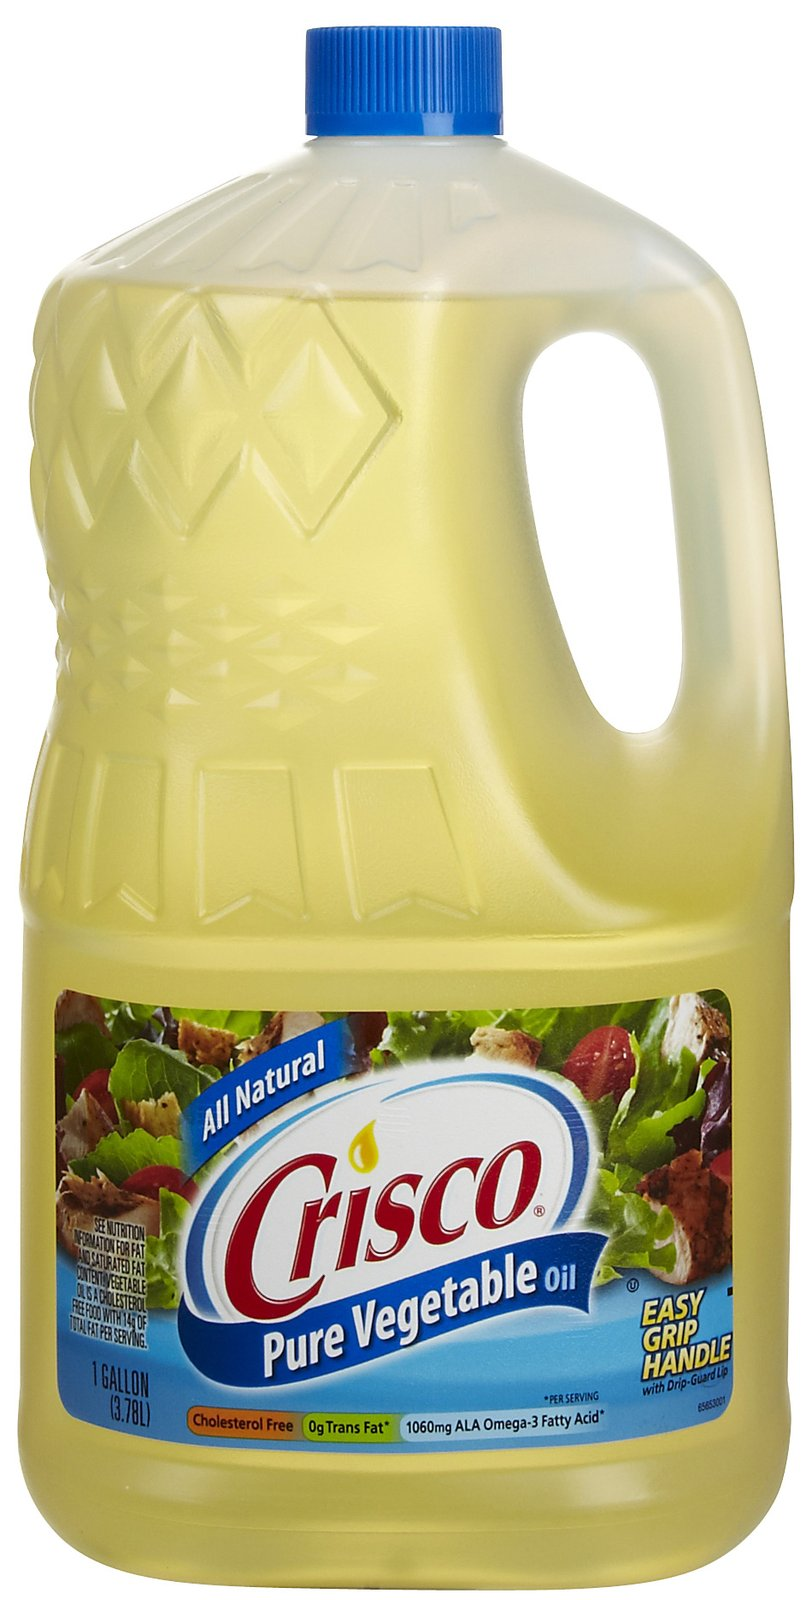 Crisco Pure Vegetable Oil